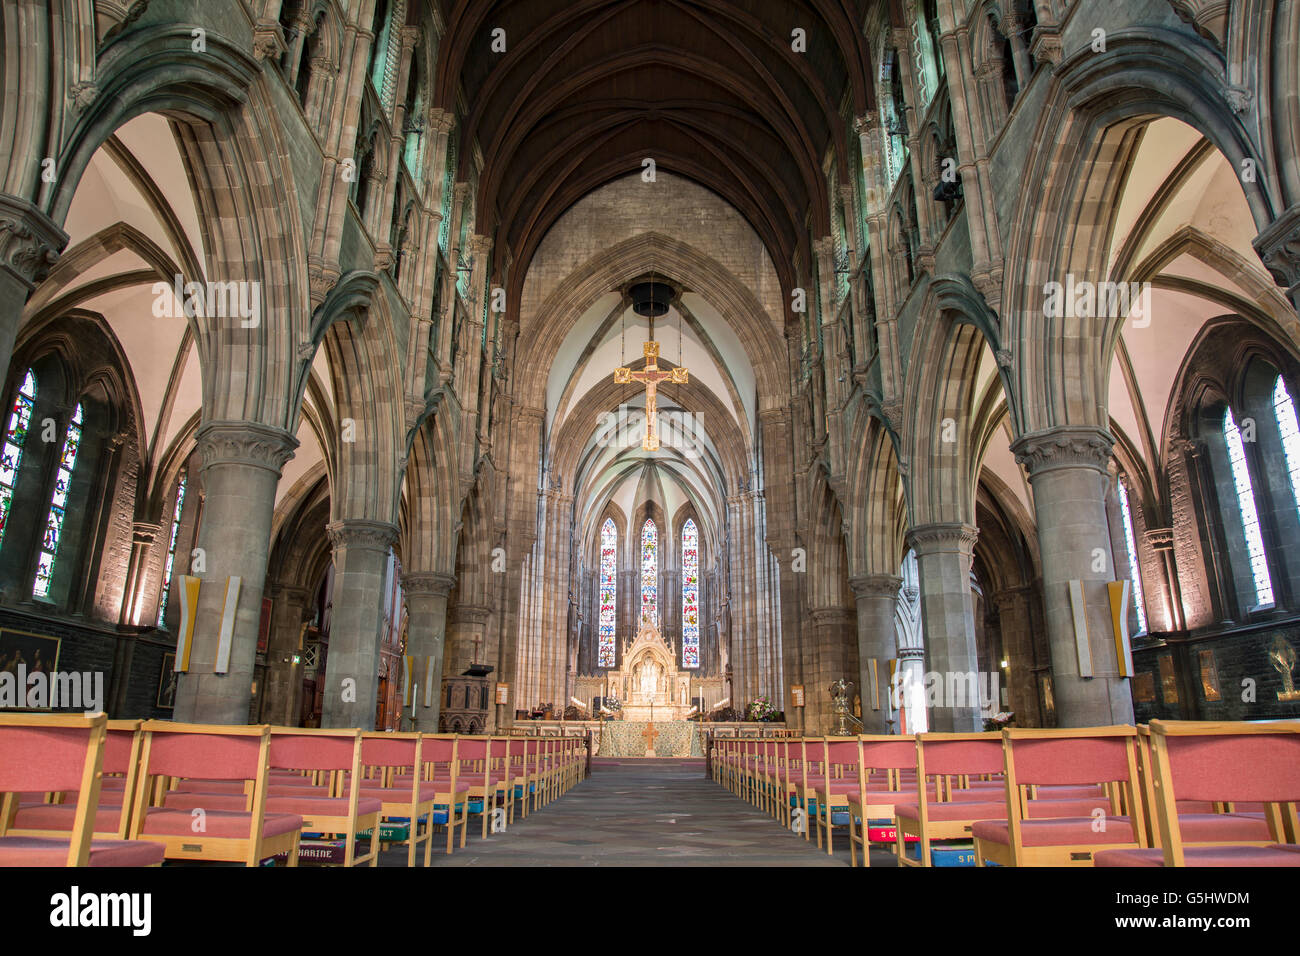 St Marys Episcopal Cathedral Church Stock Photos & St ...